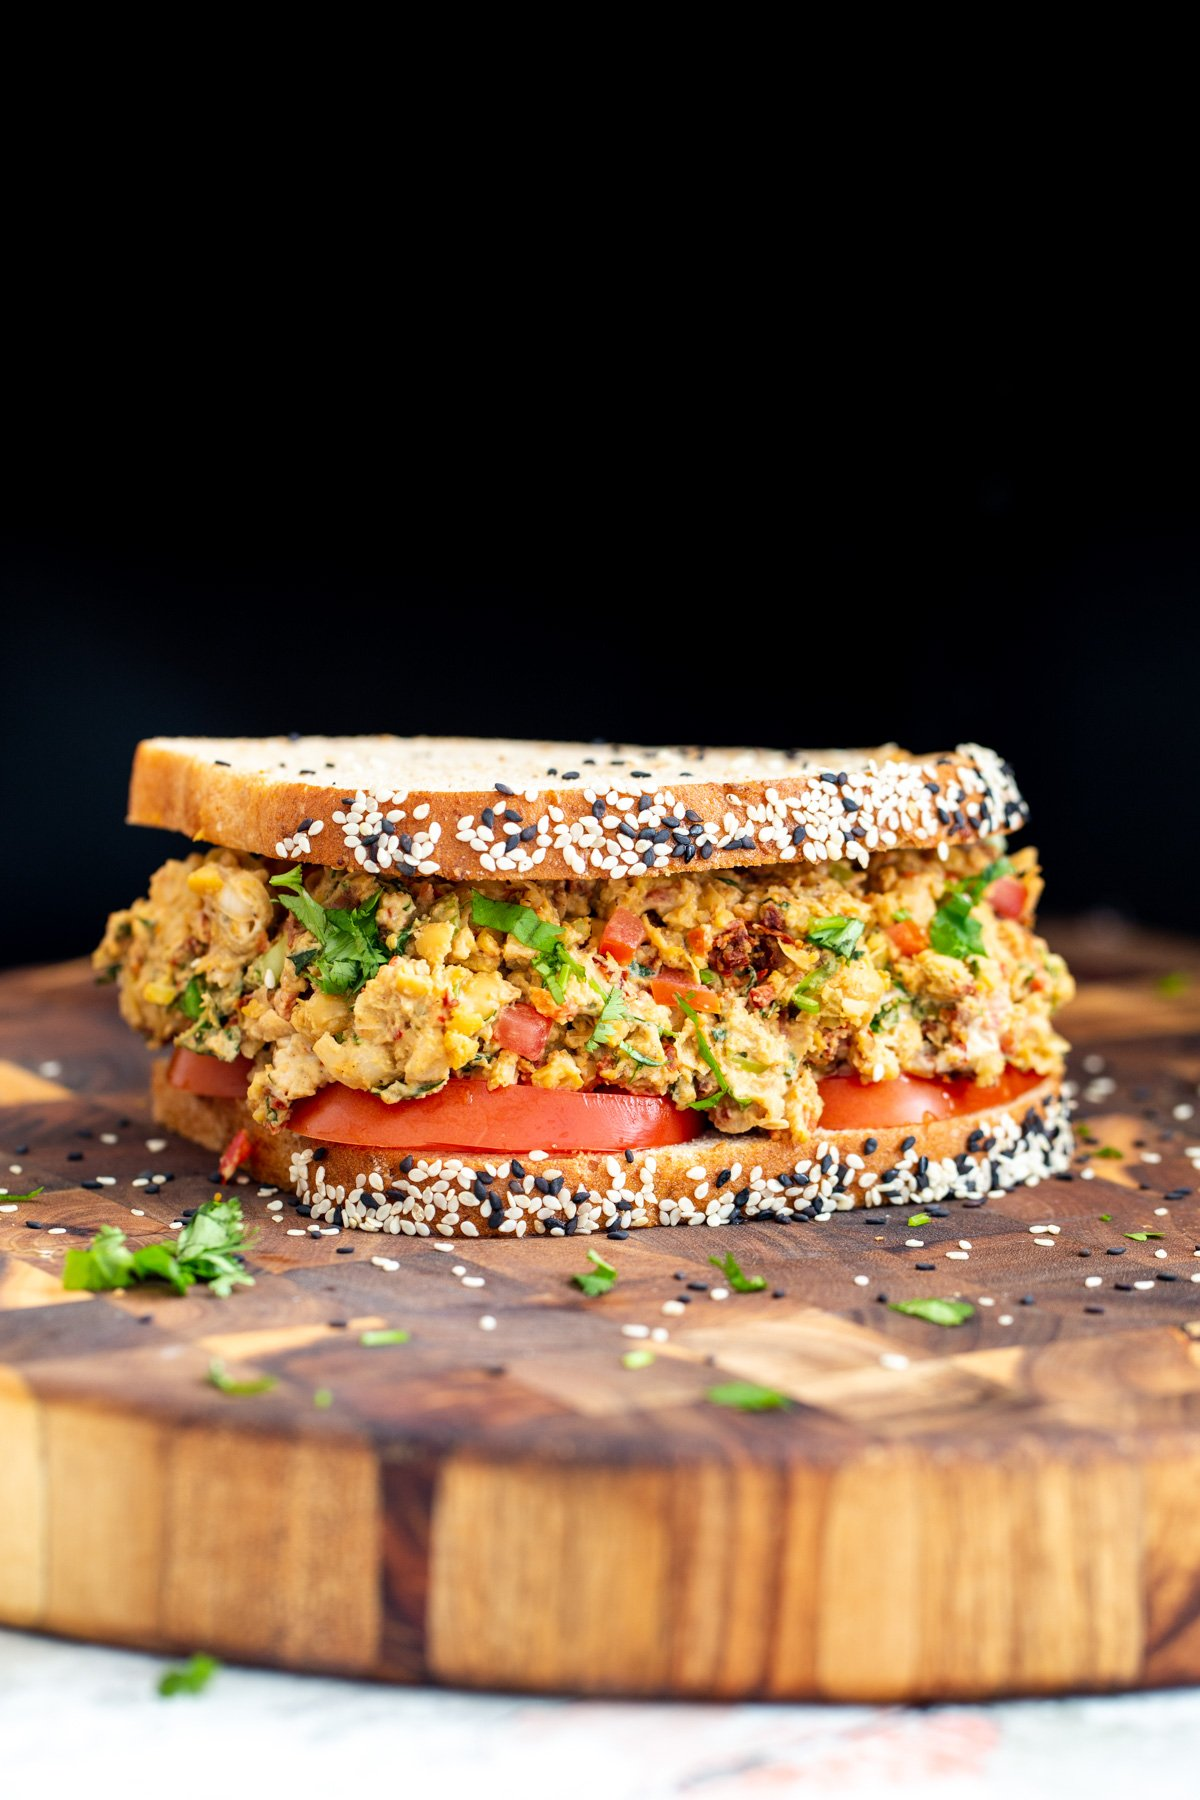 Mediterranean Sandwich with chickpea salad with lemon tahini dressing